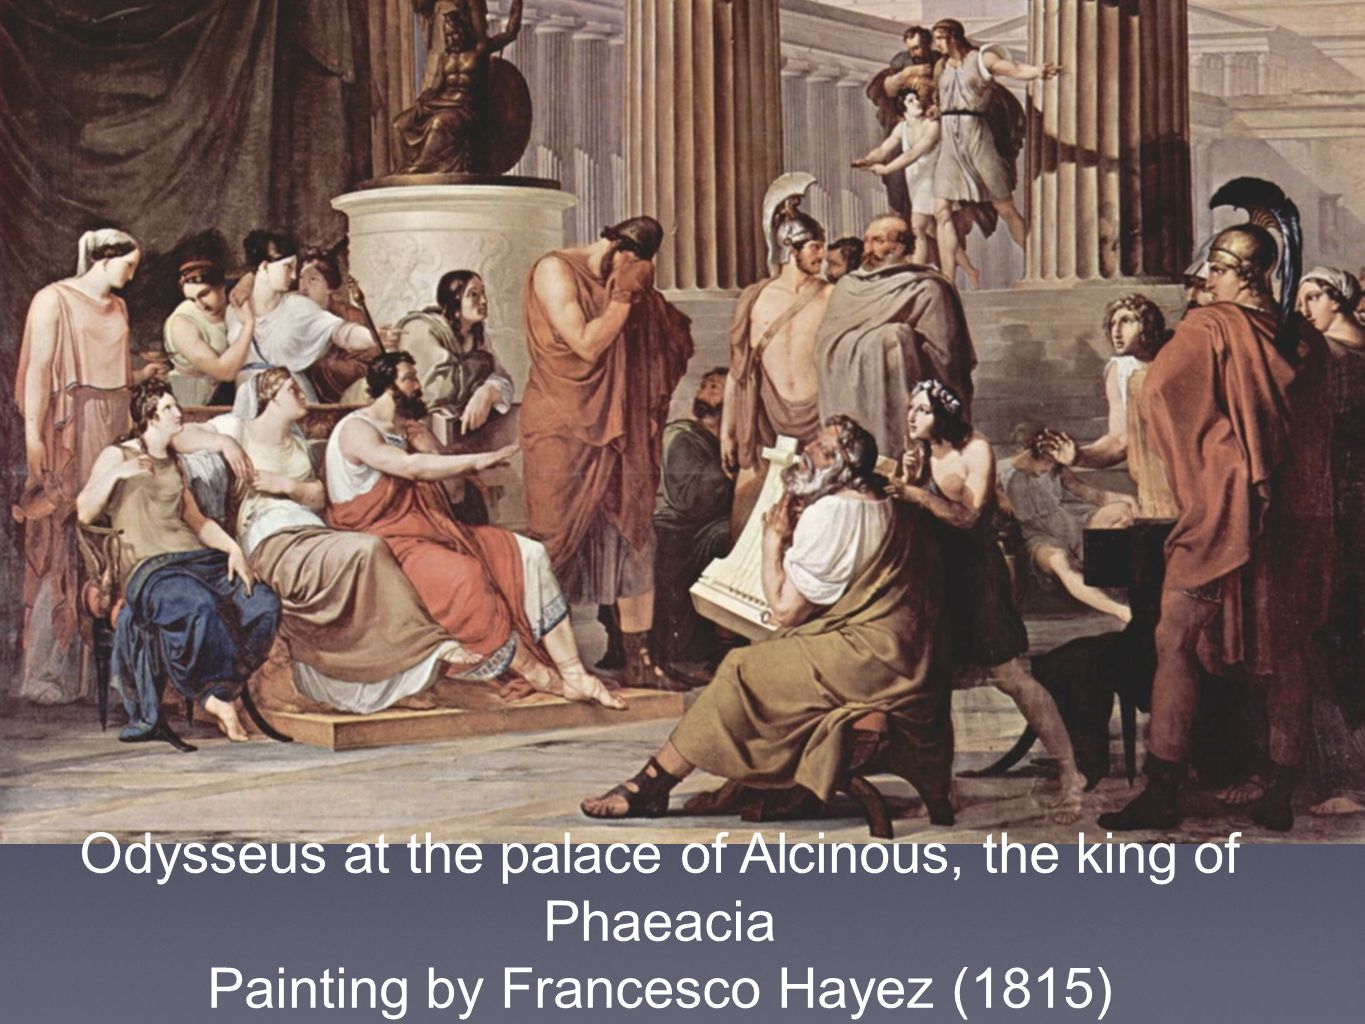 Odysseus at the palace of Alcinous, the king of Phaeacia Painting by Francesco Hayez (1815)